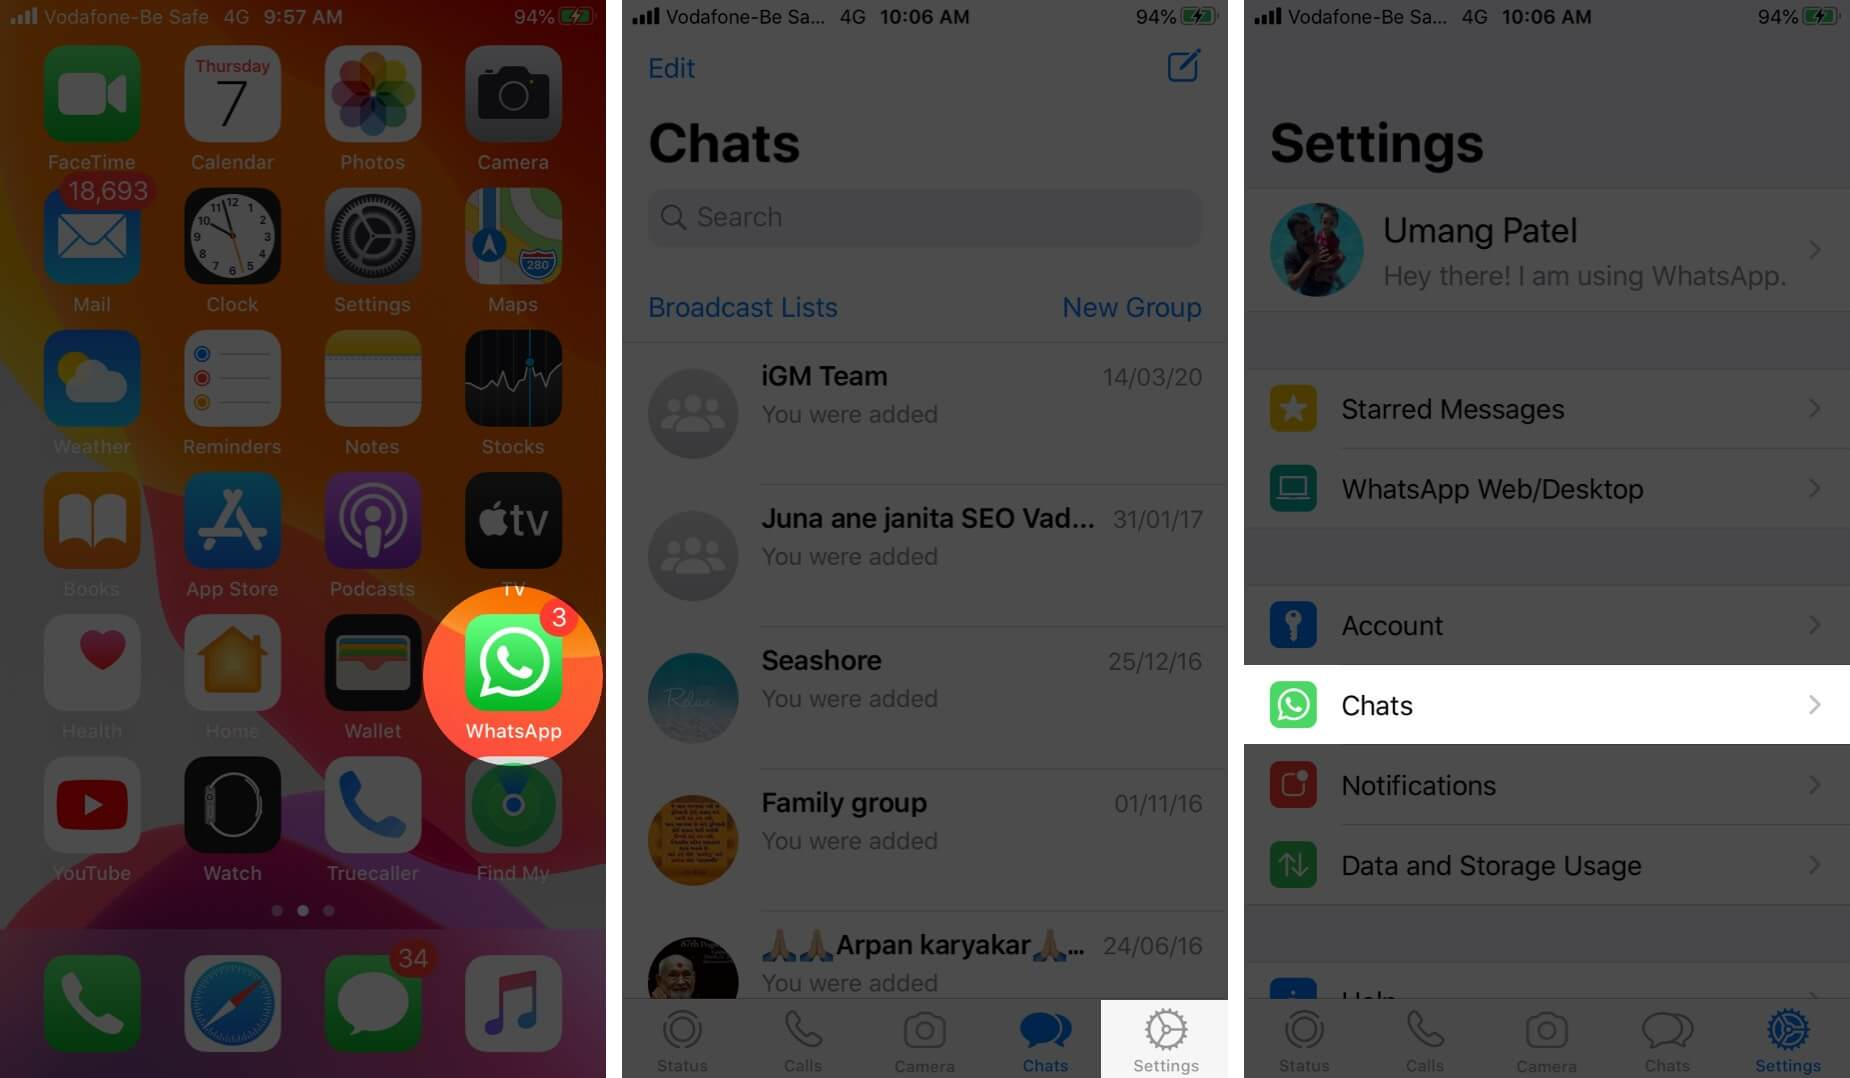 Open WhatsApp Tap on Settings and Then Tap on Chat